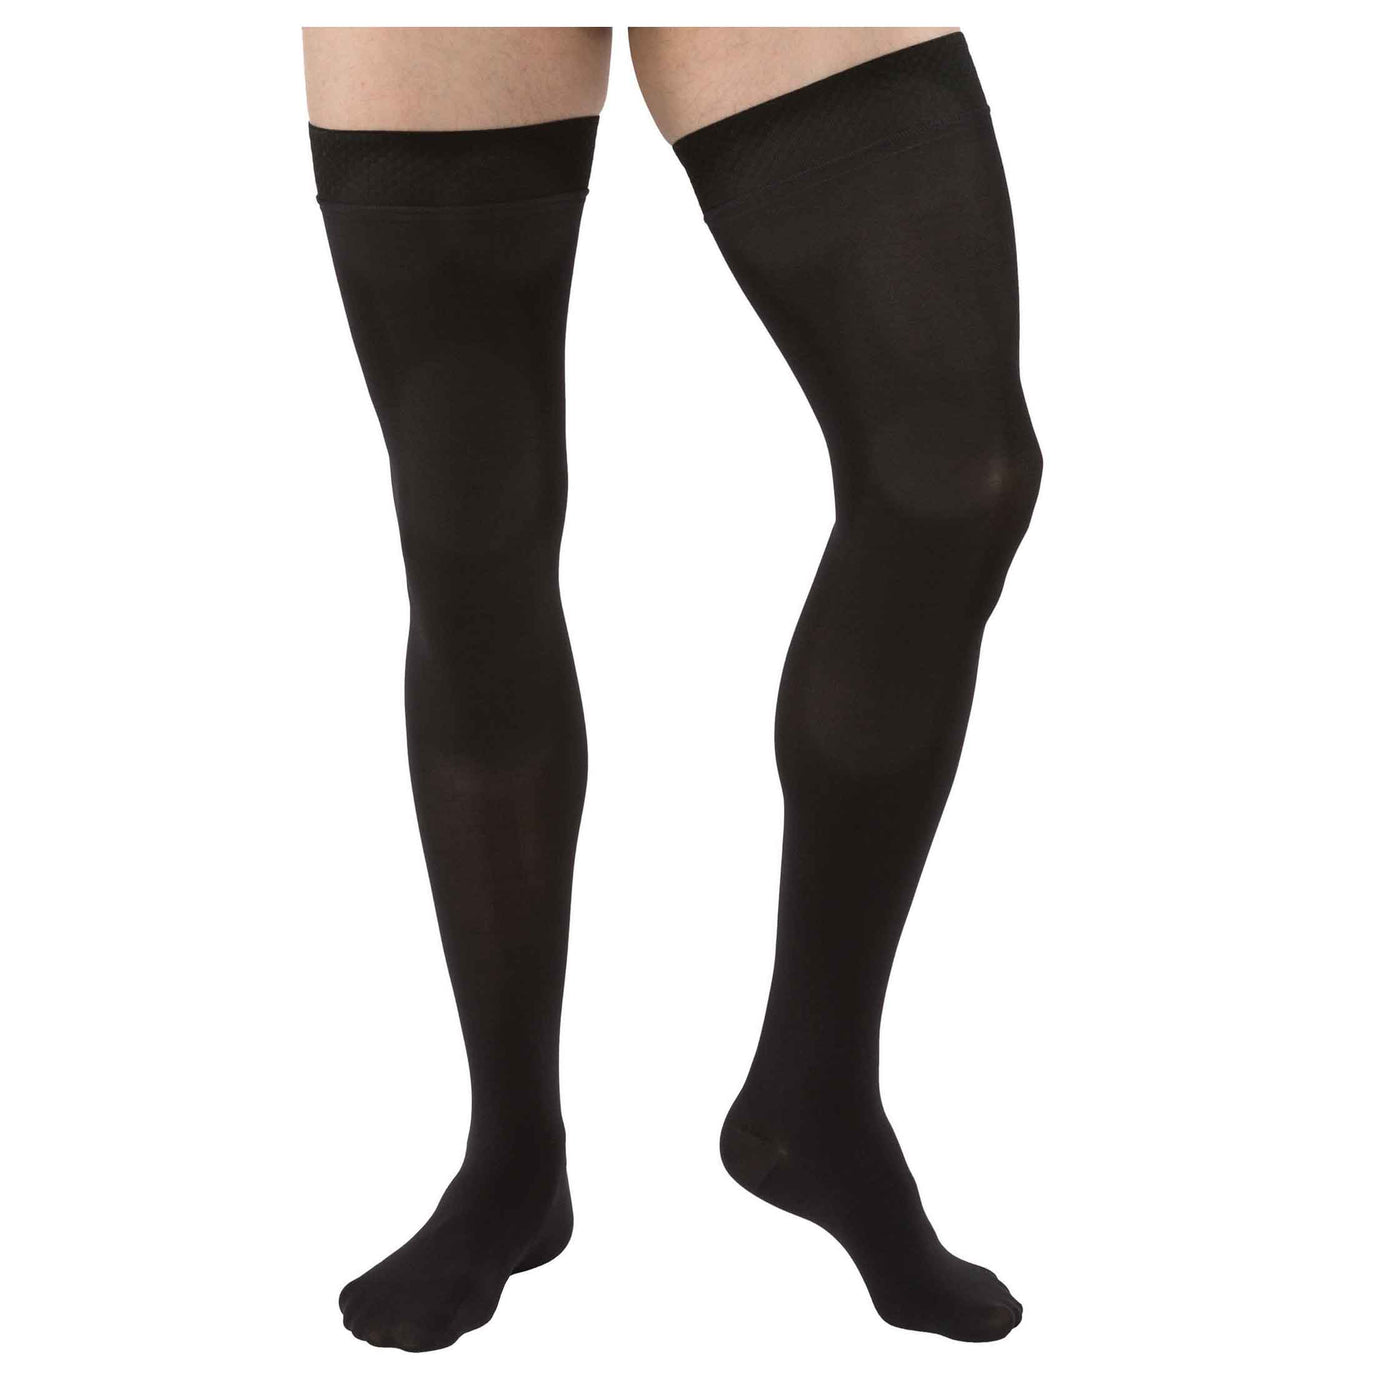 5c5727a25 Relief Compression Thigh Highs 20-30mmHg - Jobst — BrightLife Direct